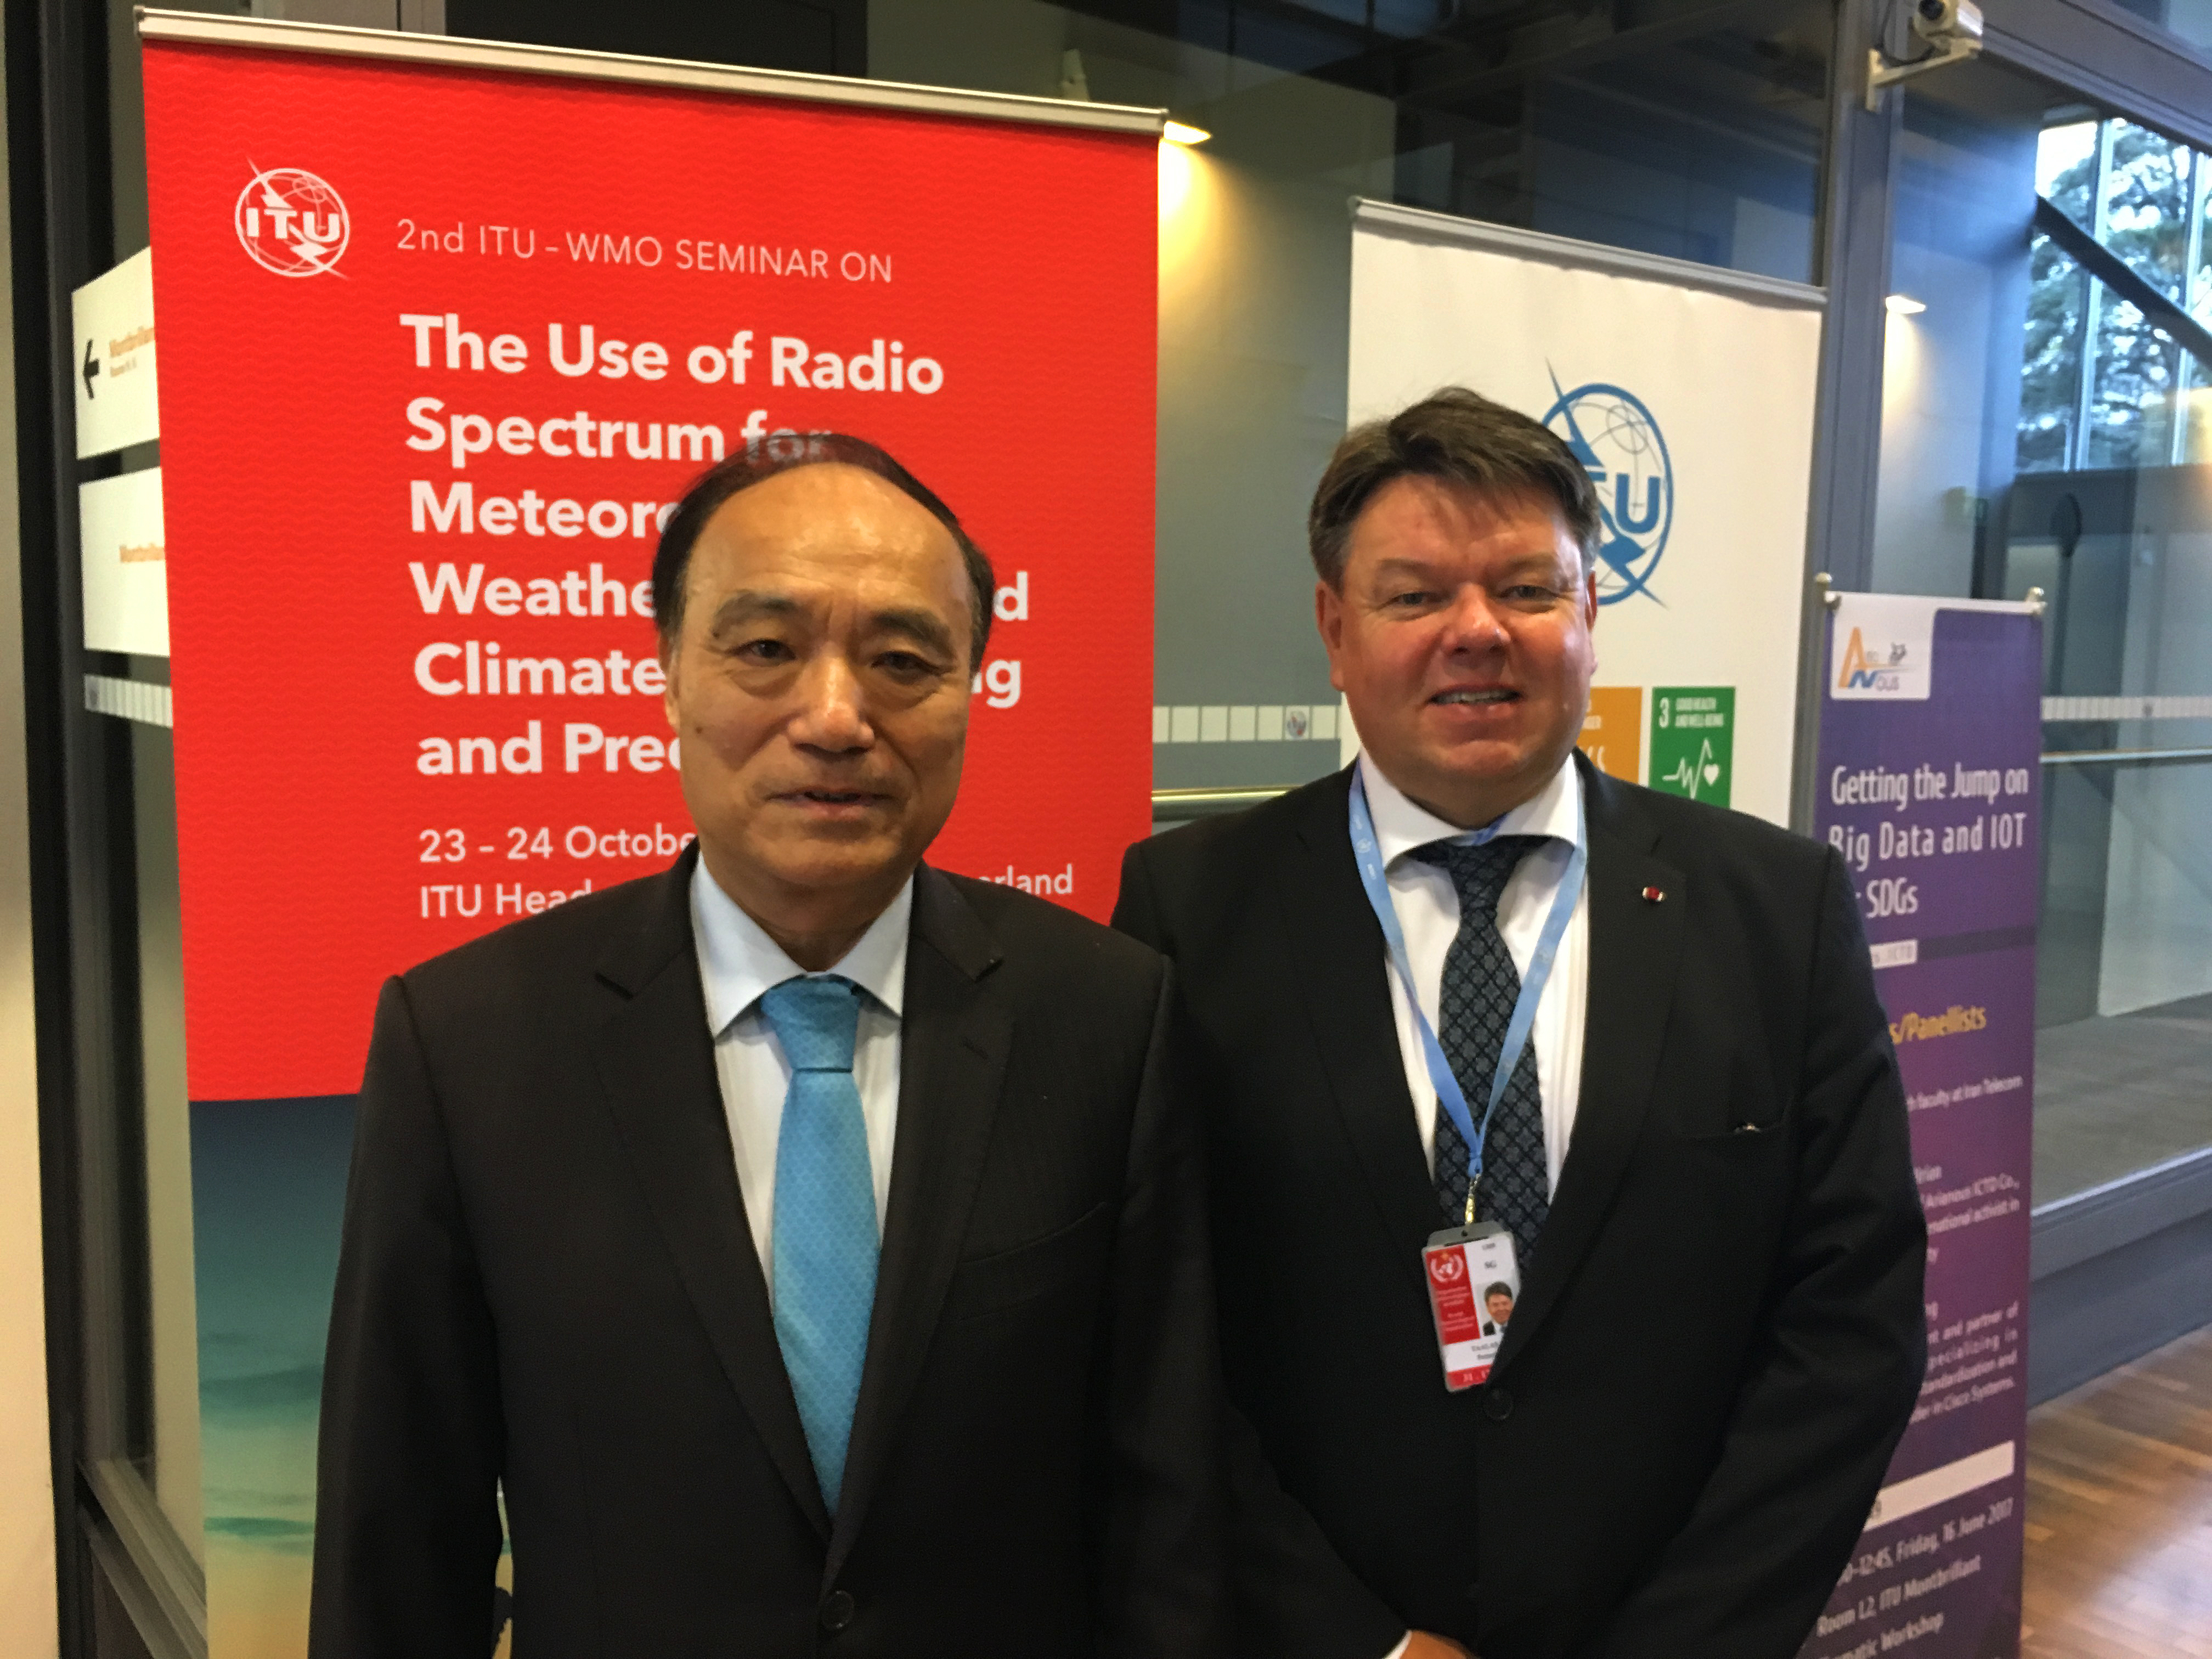 Heads of ITU and WMO at joint seminar on radio spectrum for meteorology, 23-24 Oct 2017